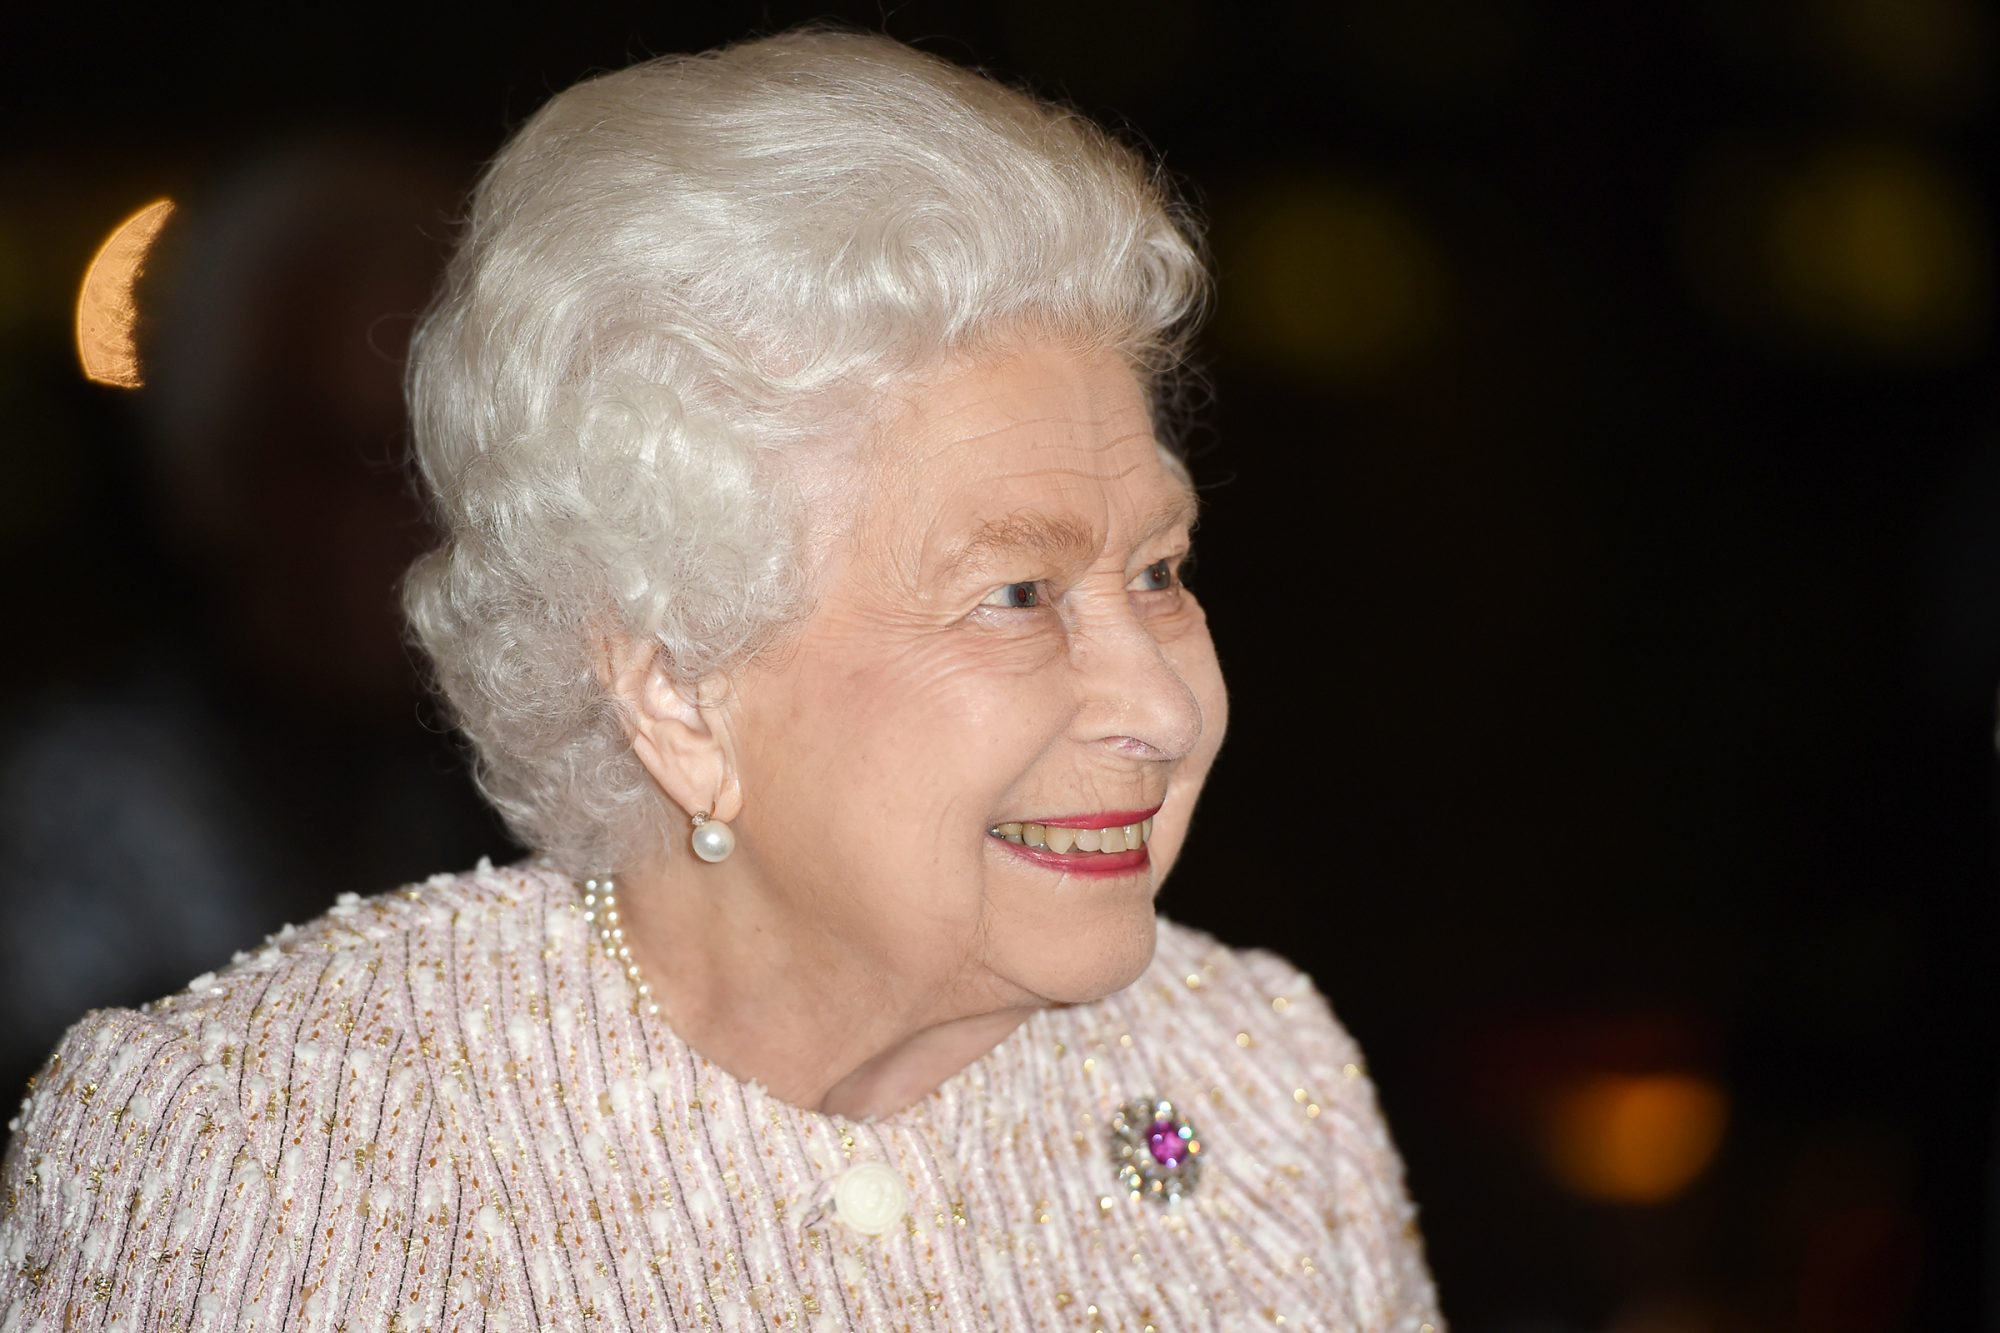 Queen Elizabeth II presents the Chatham House Prize 2019 to Sir David Attenborough (not pictured) at the Royal institute of International Affairs, Chatham House on November 20, 2019 in London Colney